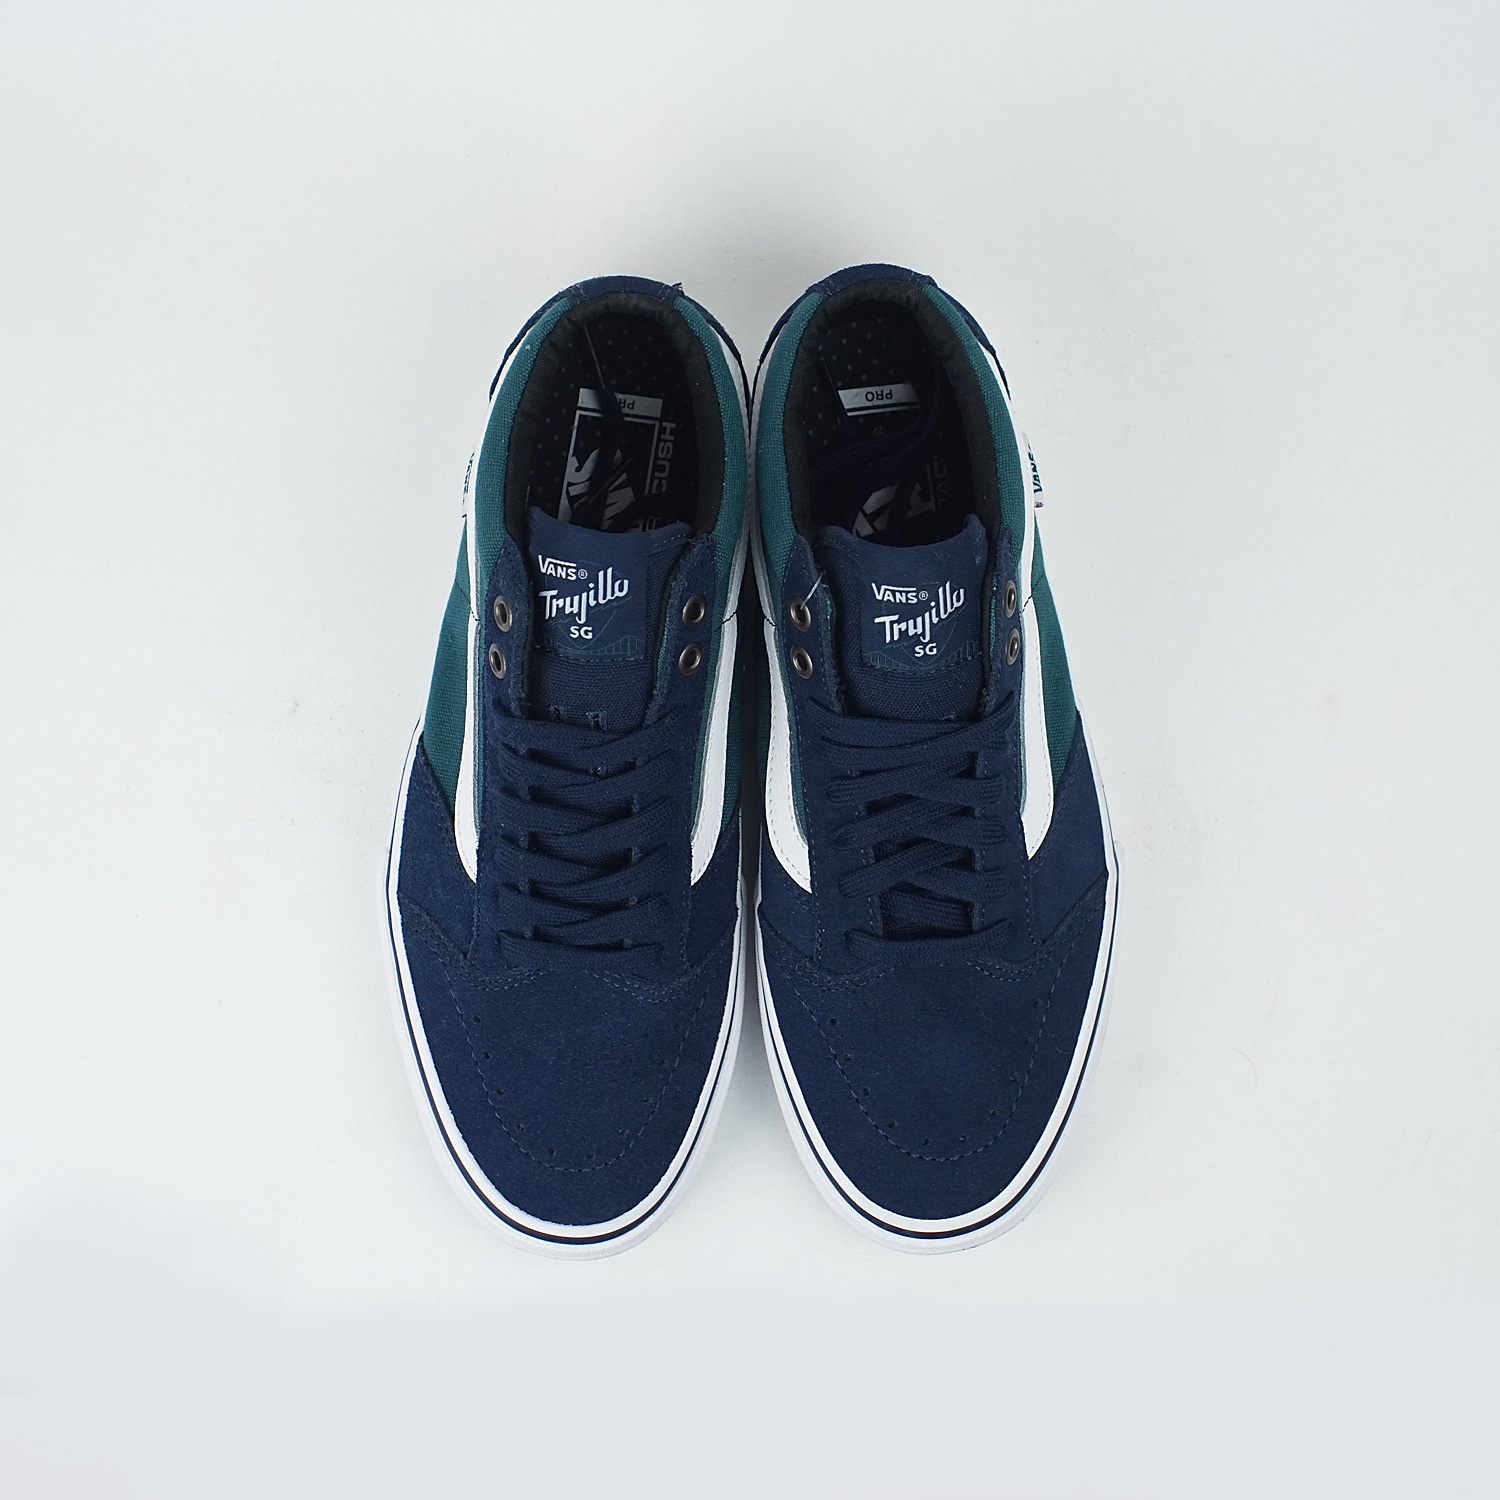 9b316ba4bf Vans Slip On Pro Rubber Dress Blue.Vans TNT SG Dress BLUES DEEP TEAL ...